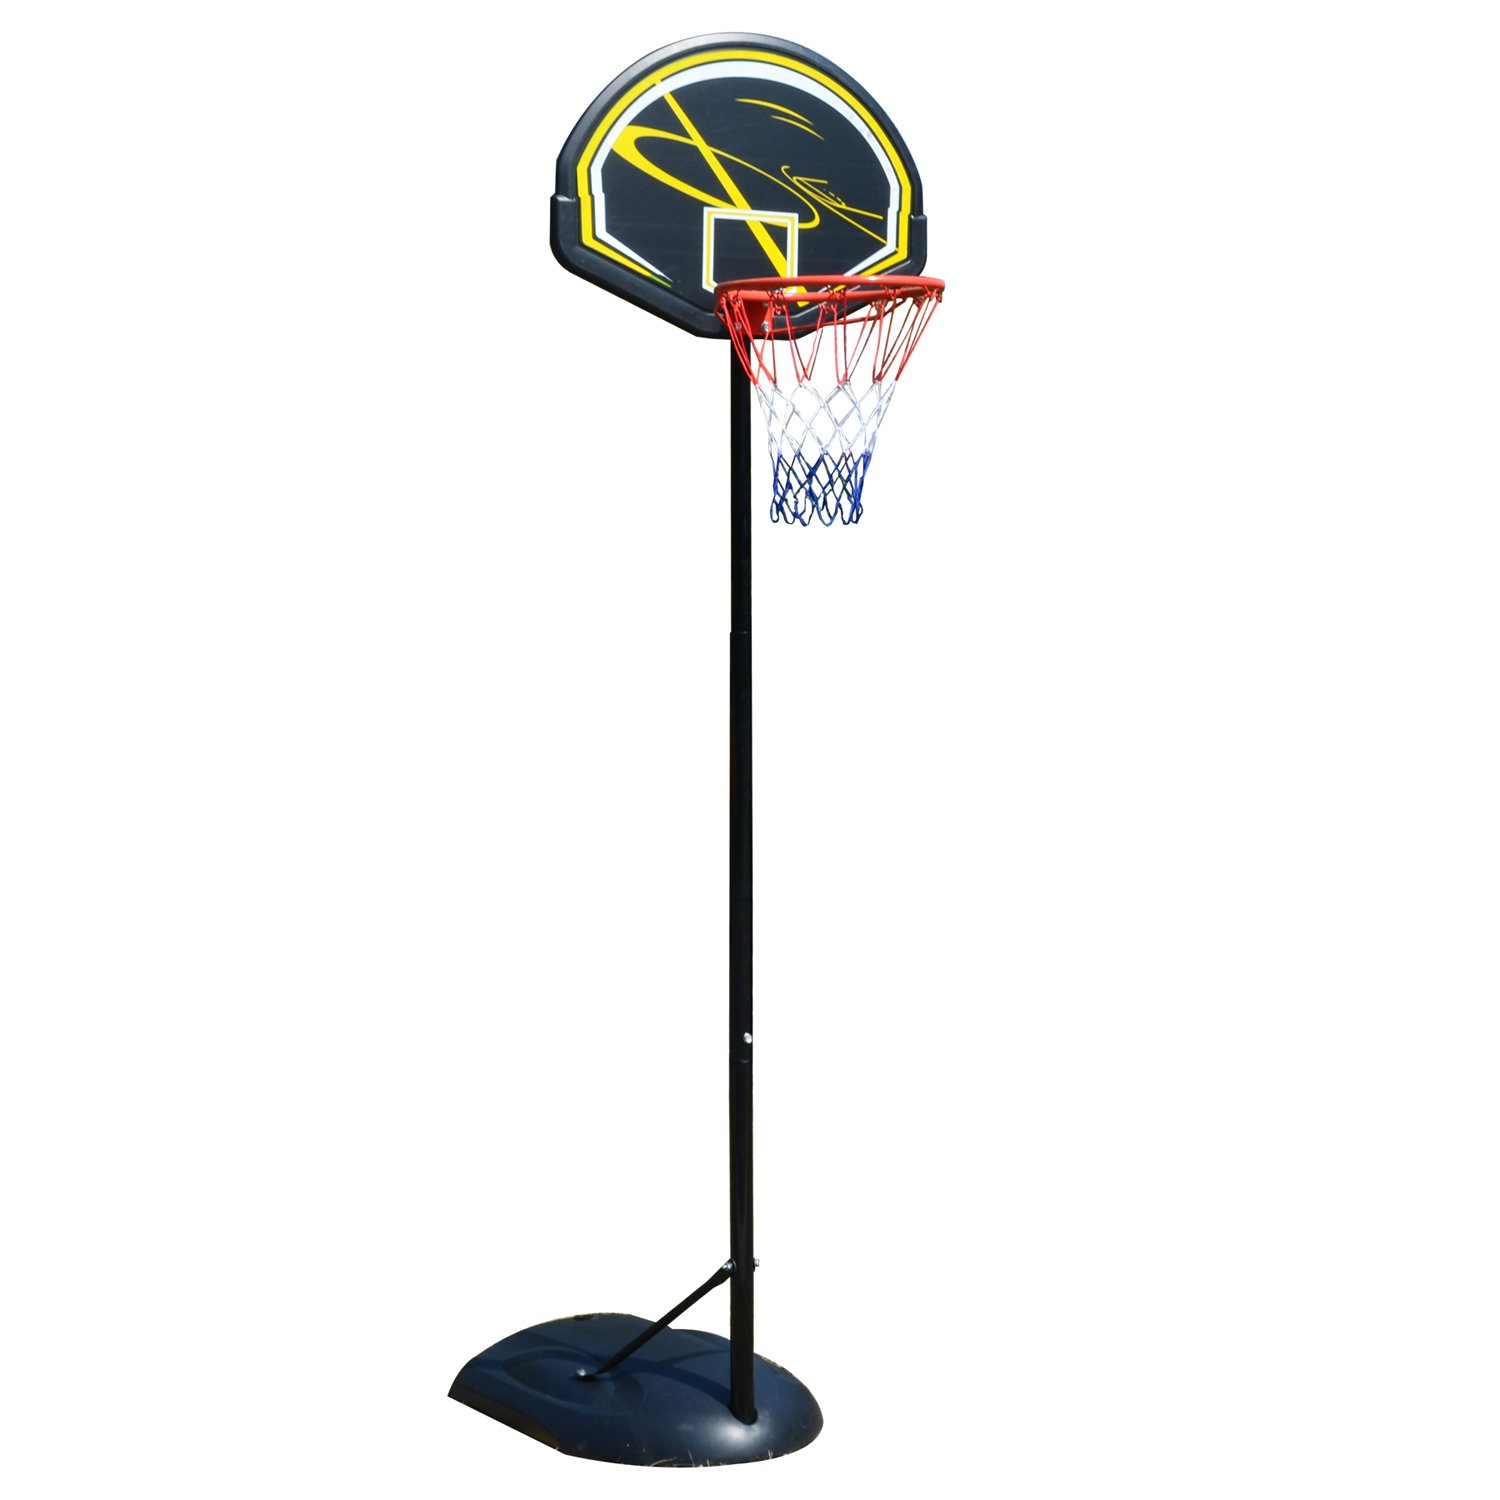 Cosway Basketball Goal, Indoor Outdoor Portable Adjustable Basketball System Hoop Stand Set Kids Junior Adult Youth